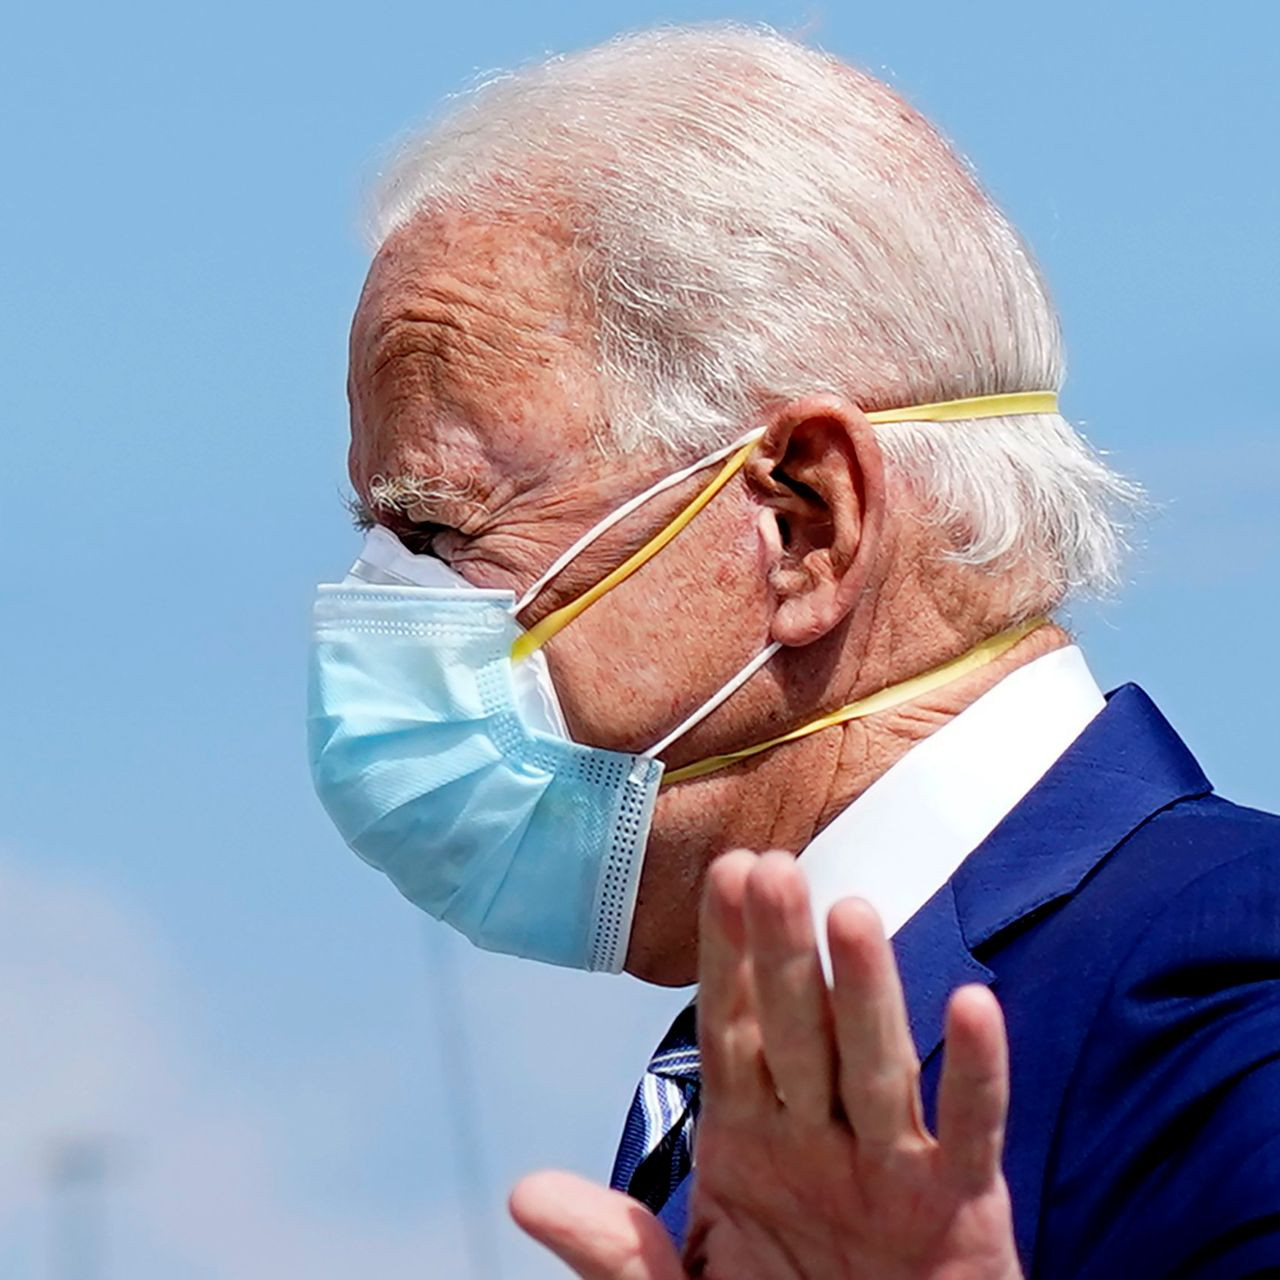 Wearing two masks better than one in slowing the spread of coronavirus, study finds